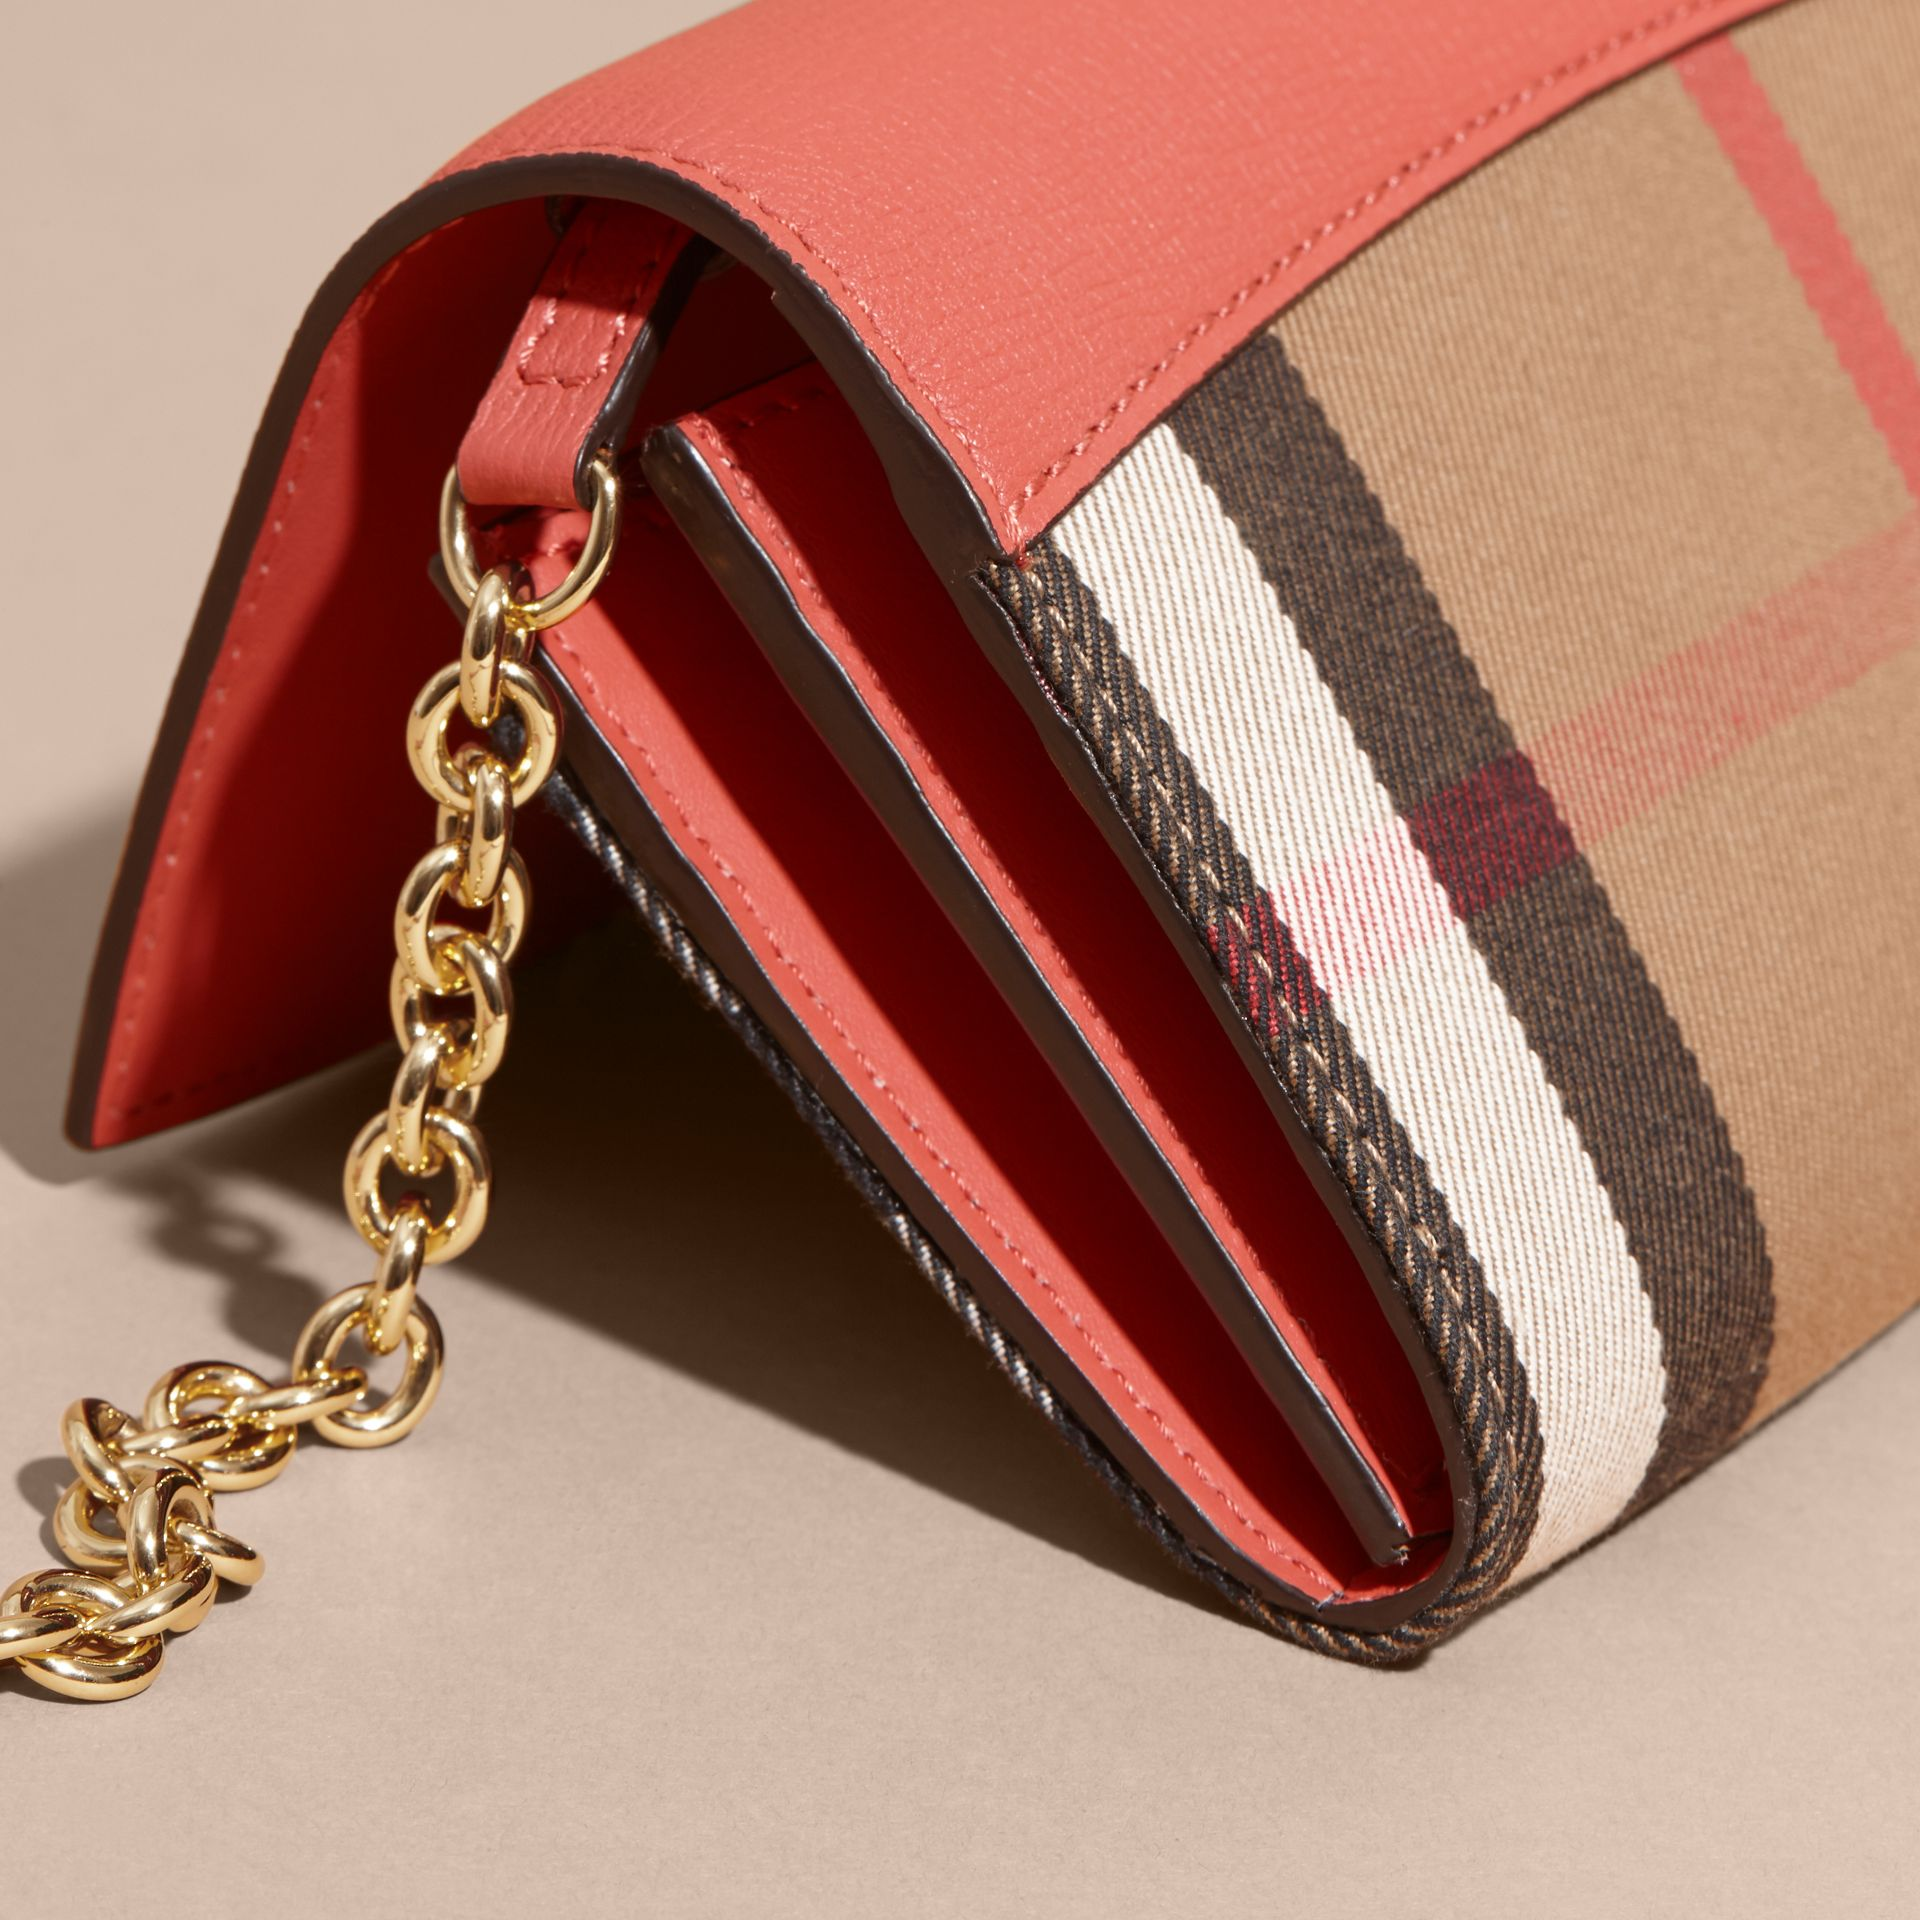 House Check and Leather Wallet with Chain in Cinnamon Red - Women | Burberry United States - gallery image 6